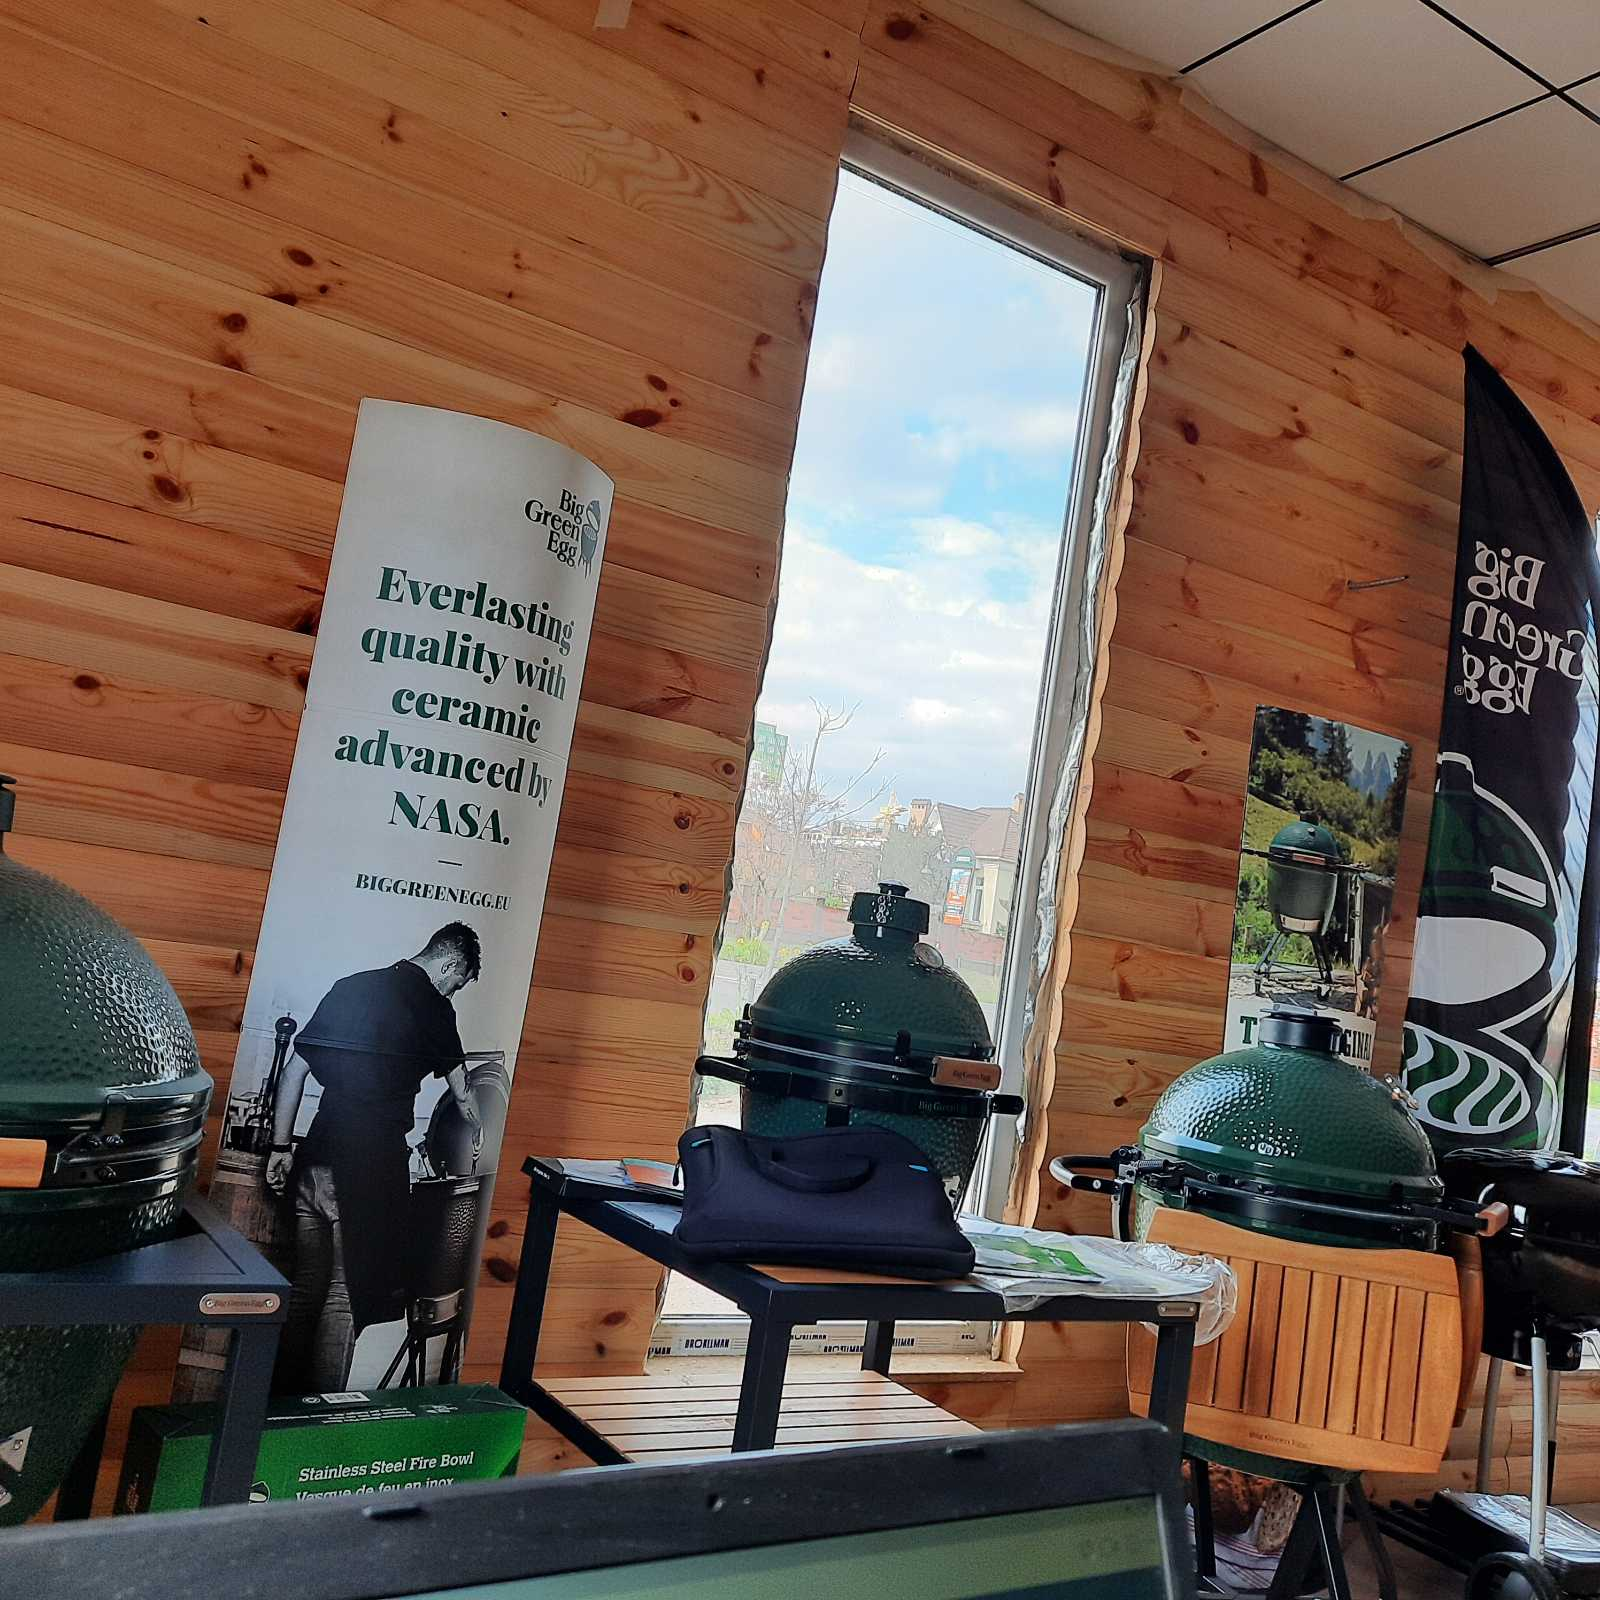 Big Green Egg гриль Большое Зеленое Яйцо Тандыр Печь в Одессе в Николаеве в Херсоне